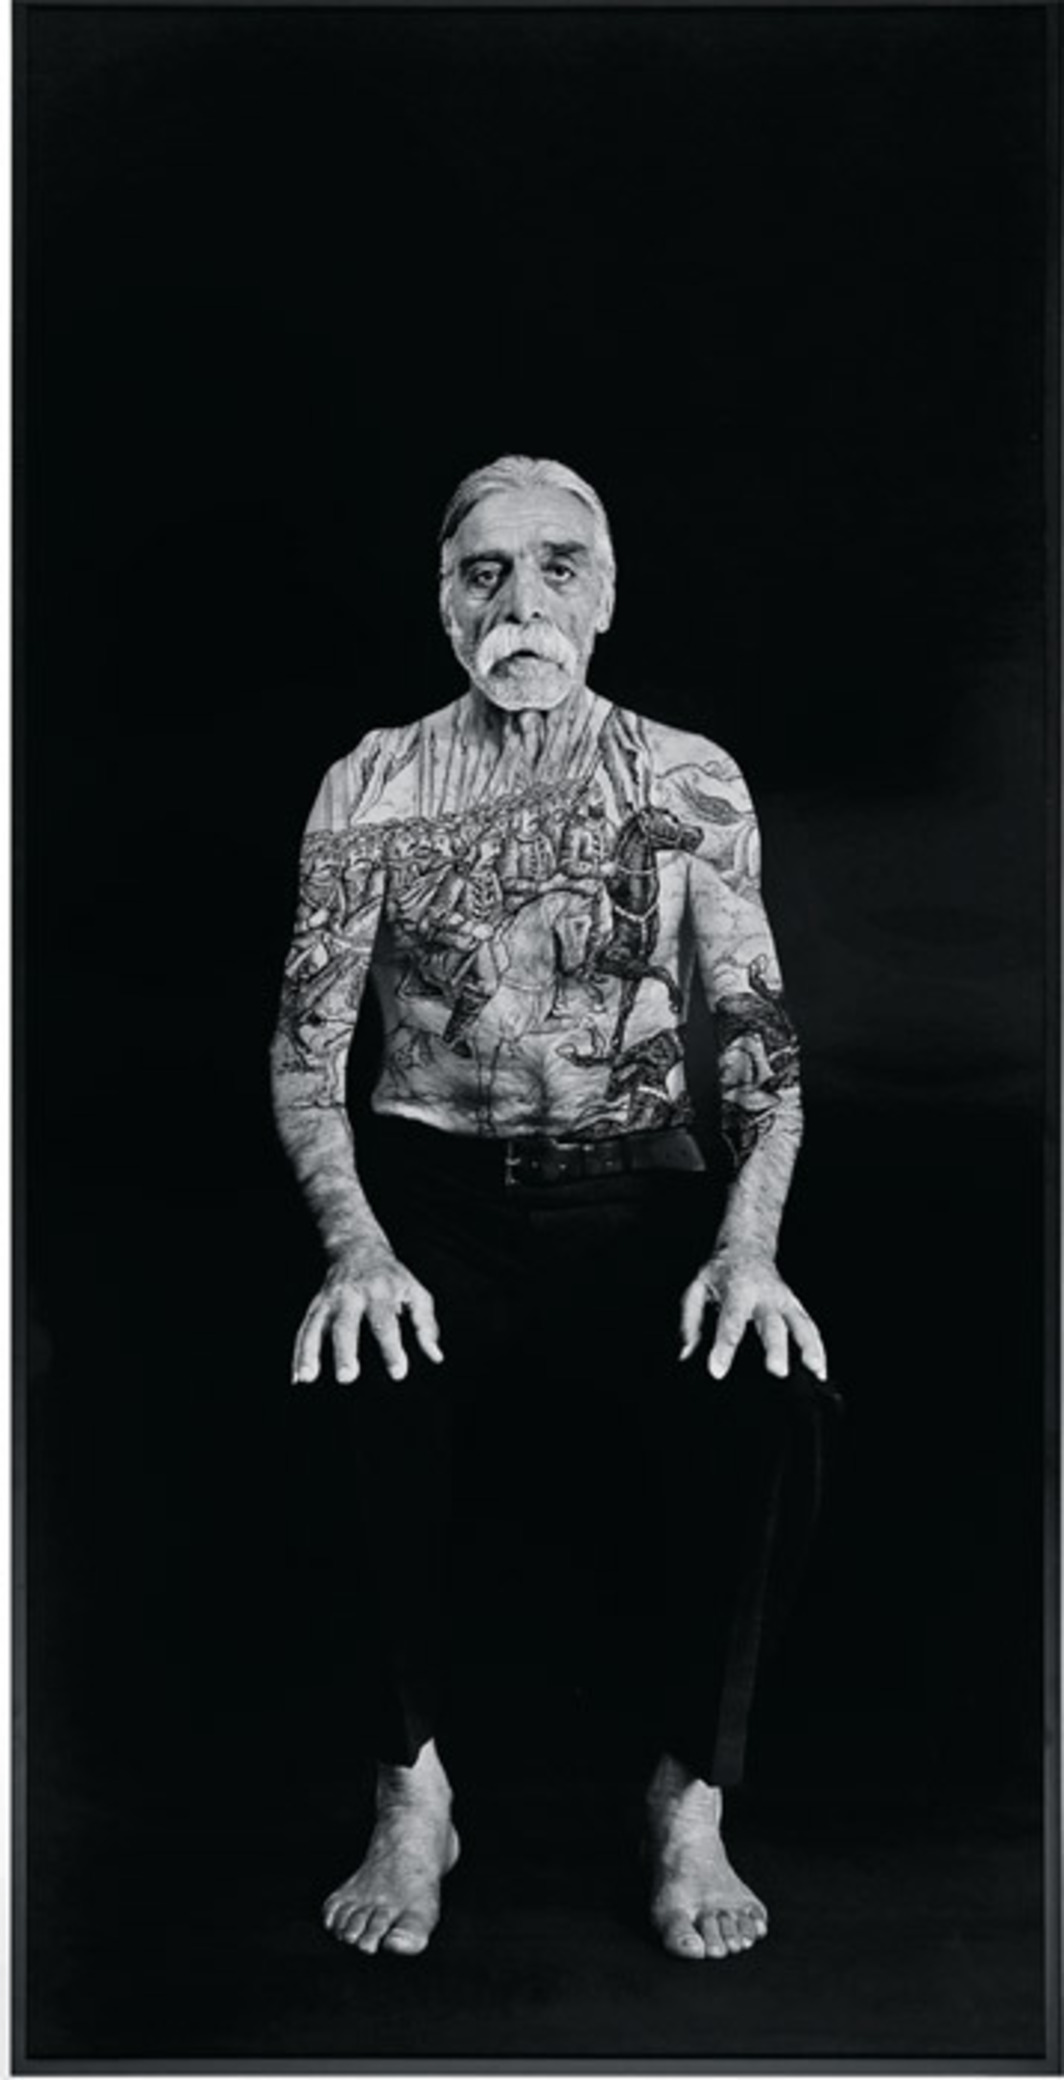 "Shirin Neshat, Bahram, 2012, ink on gelatin silver print, 99 1/8 x 49 1/2"". From the series ""The Book of Kings,"" 2012."